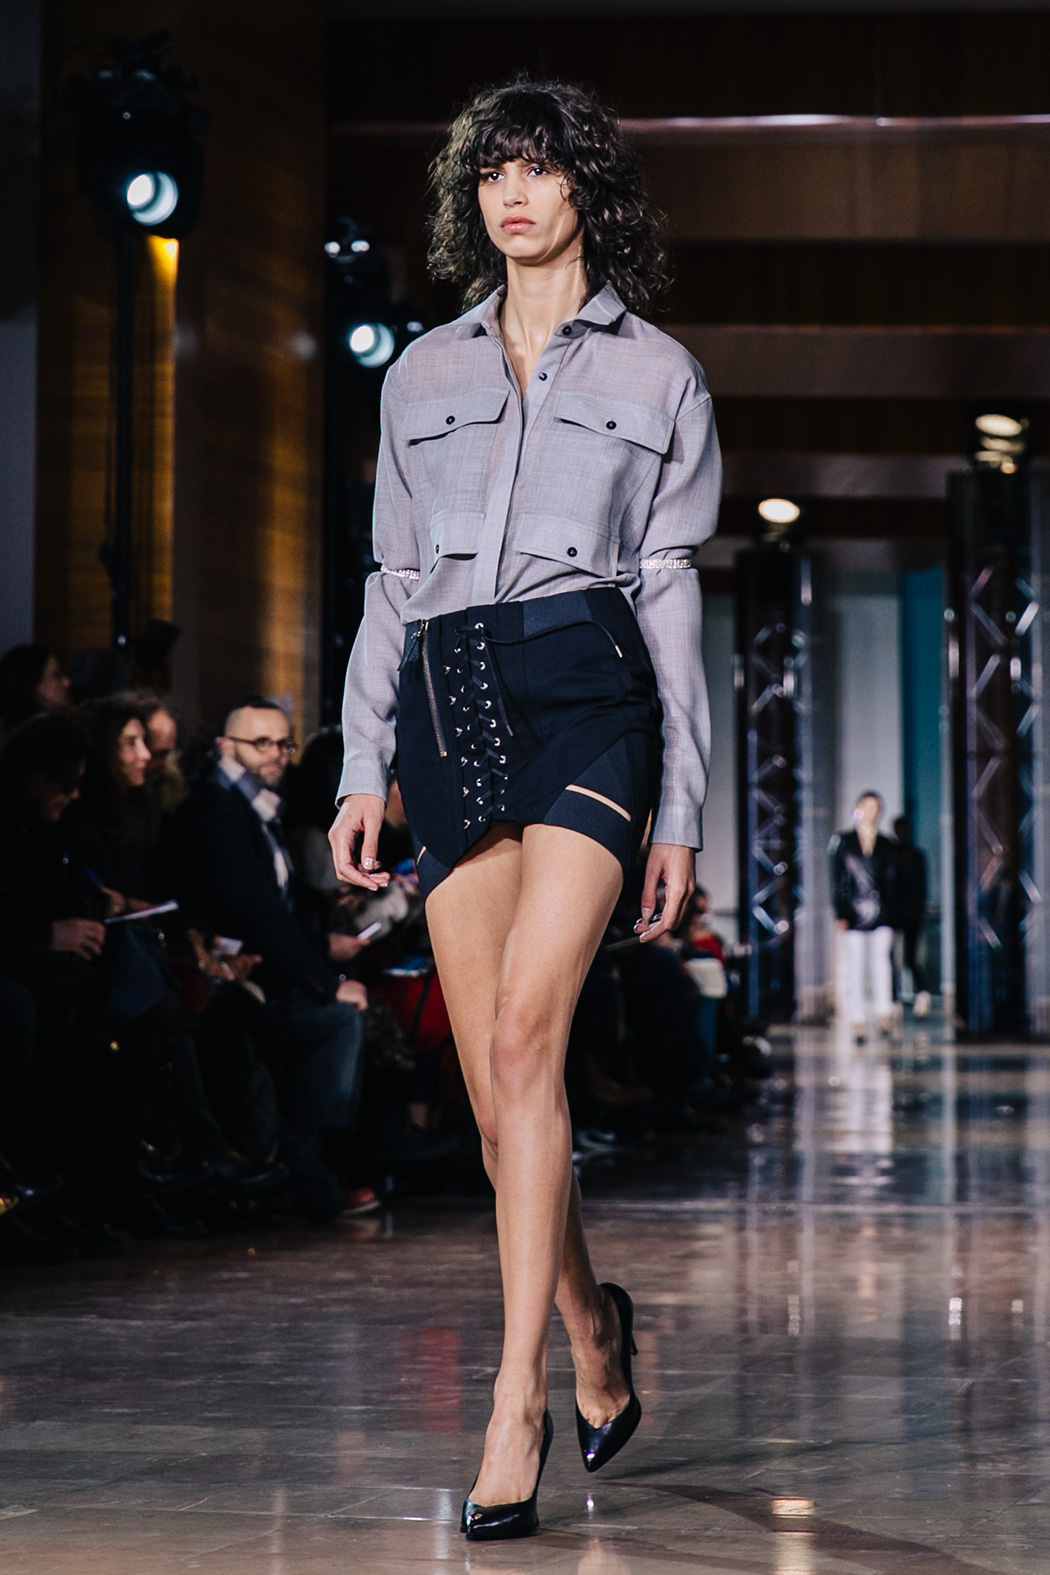 Paris_Fashion_Week-PFW-Anthony_Vaccarello_Fall_2016-Runway-2